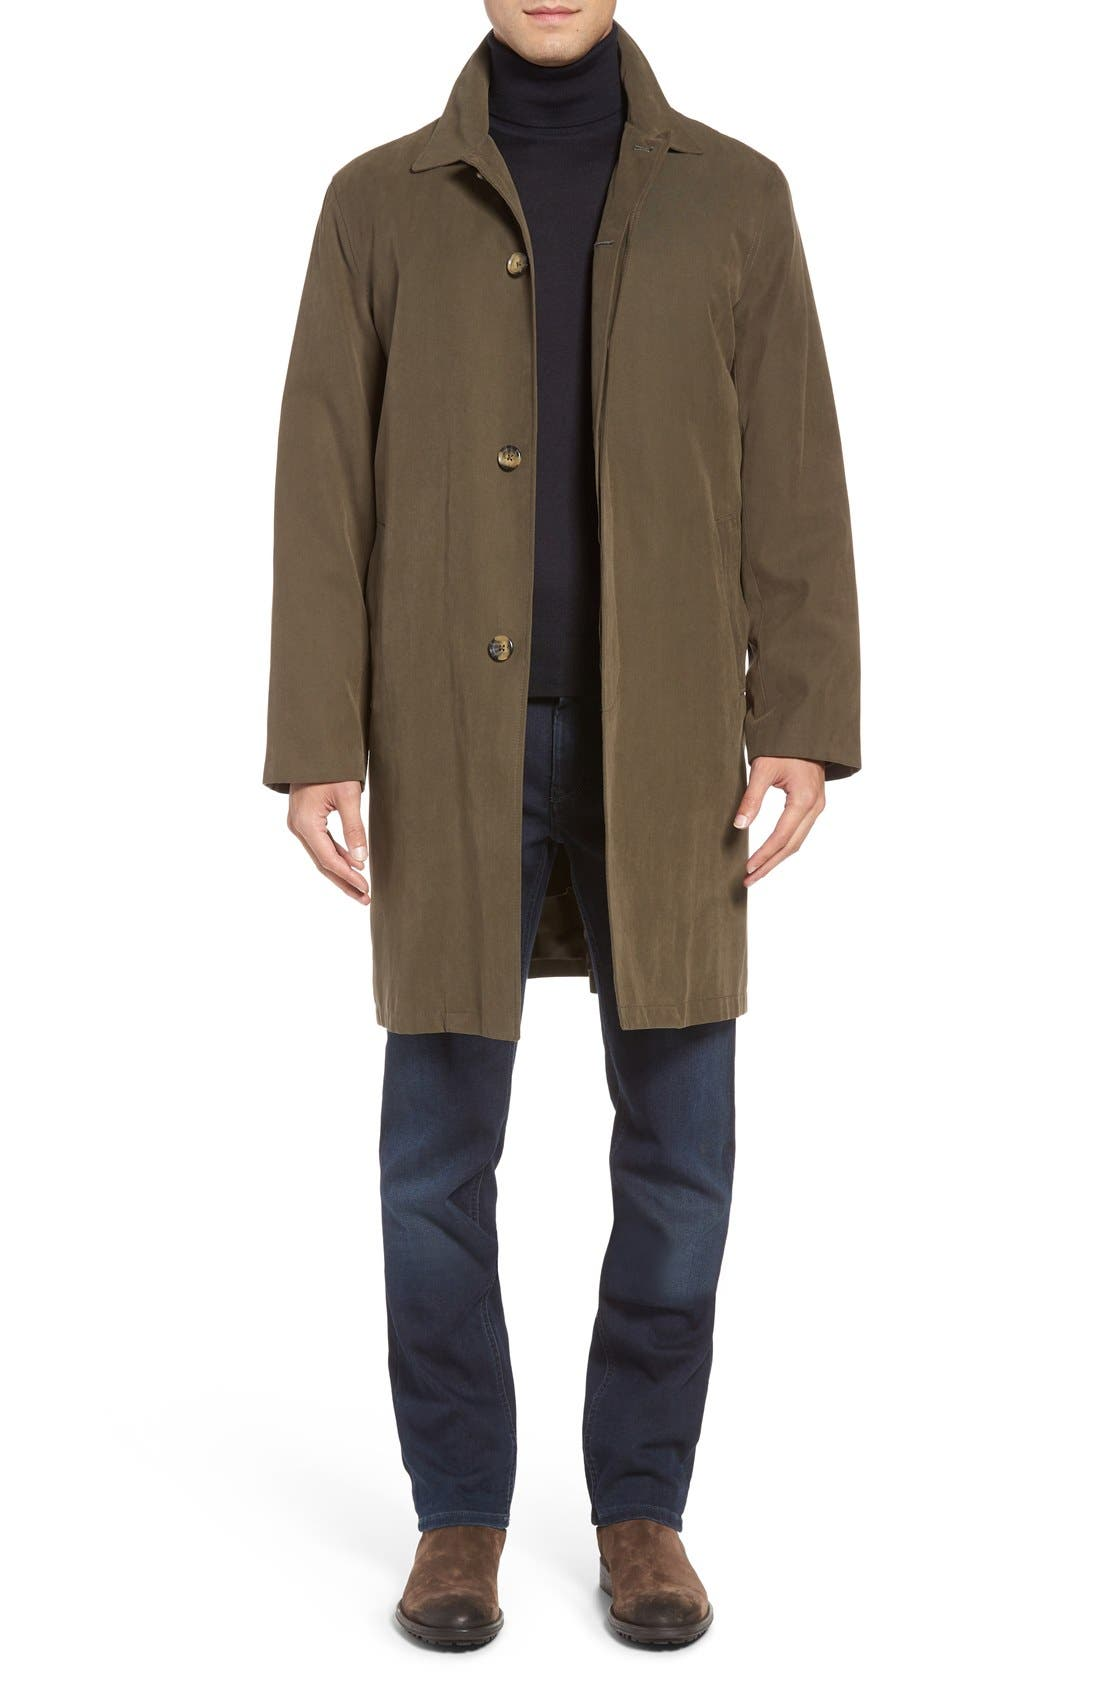 London Fog Rain Coat